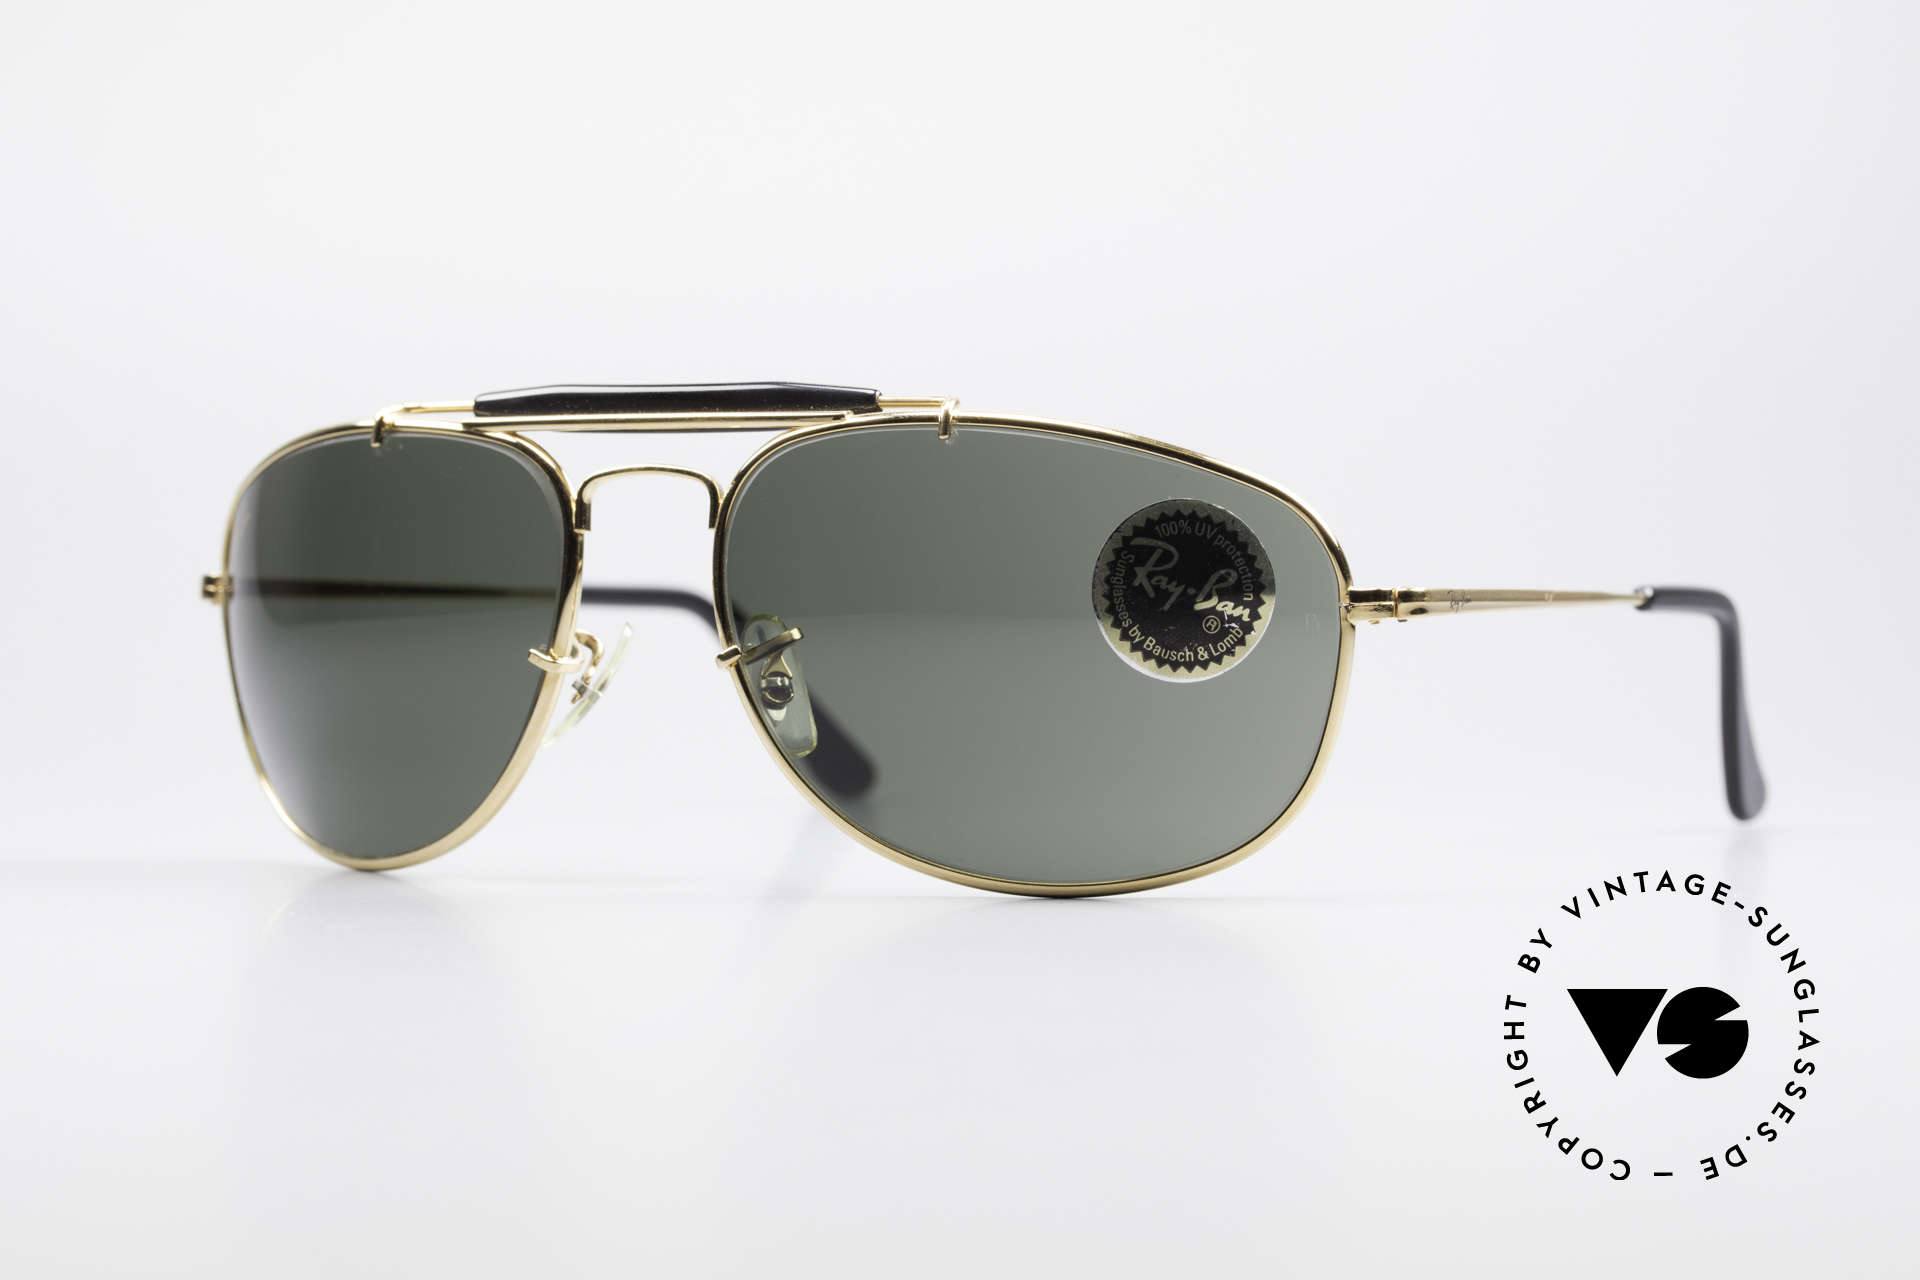 Ray Ban Sport Metal 1992 Rare Olympic Series B&L USA, rare vintage RAY-BAN sunglasses OLYMPIC GAMES 1992, Made for Men